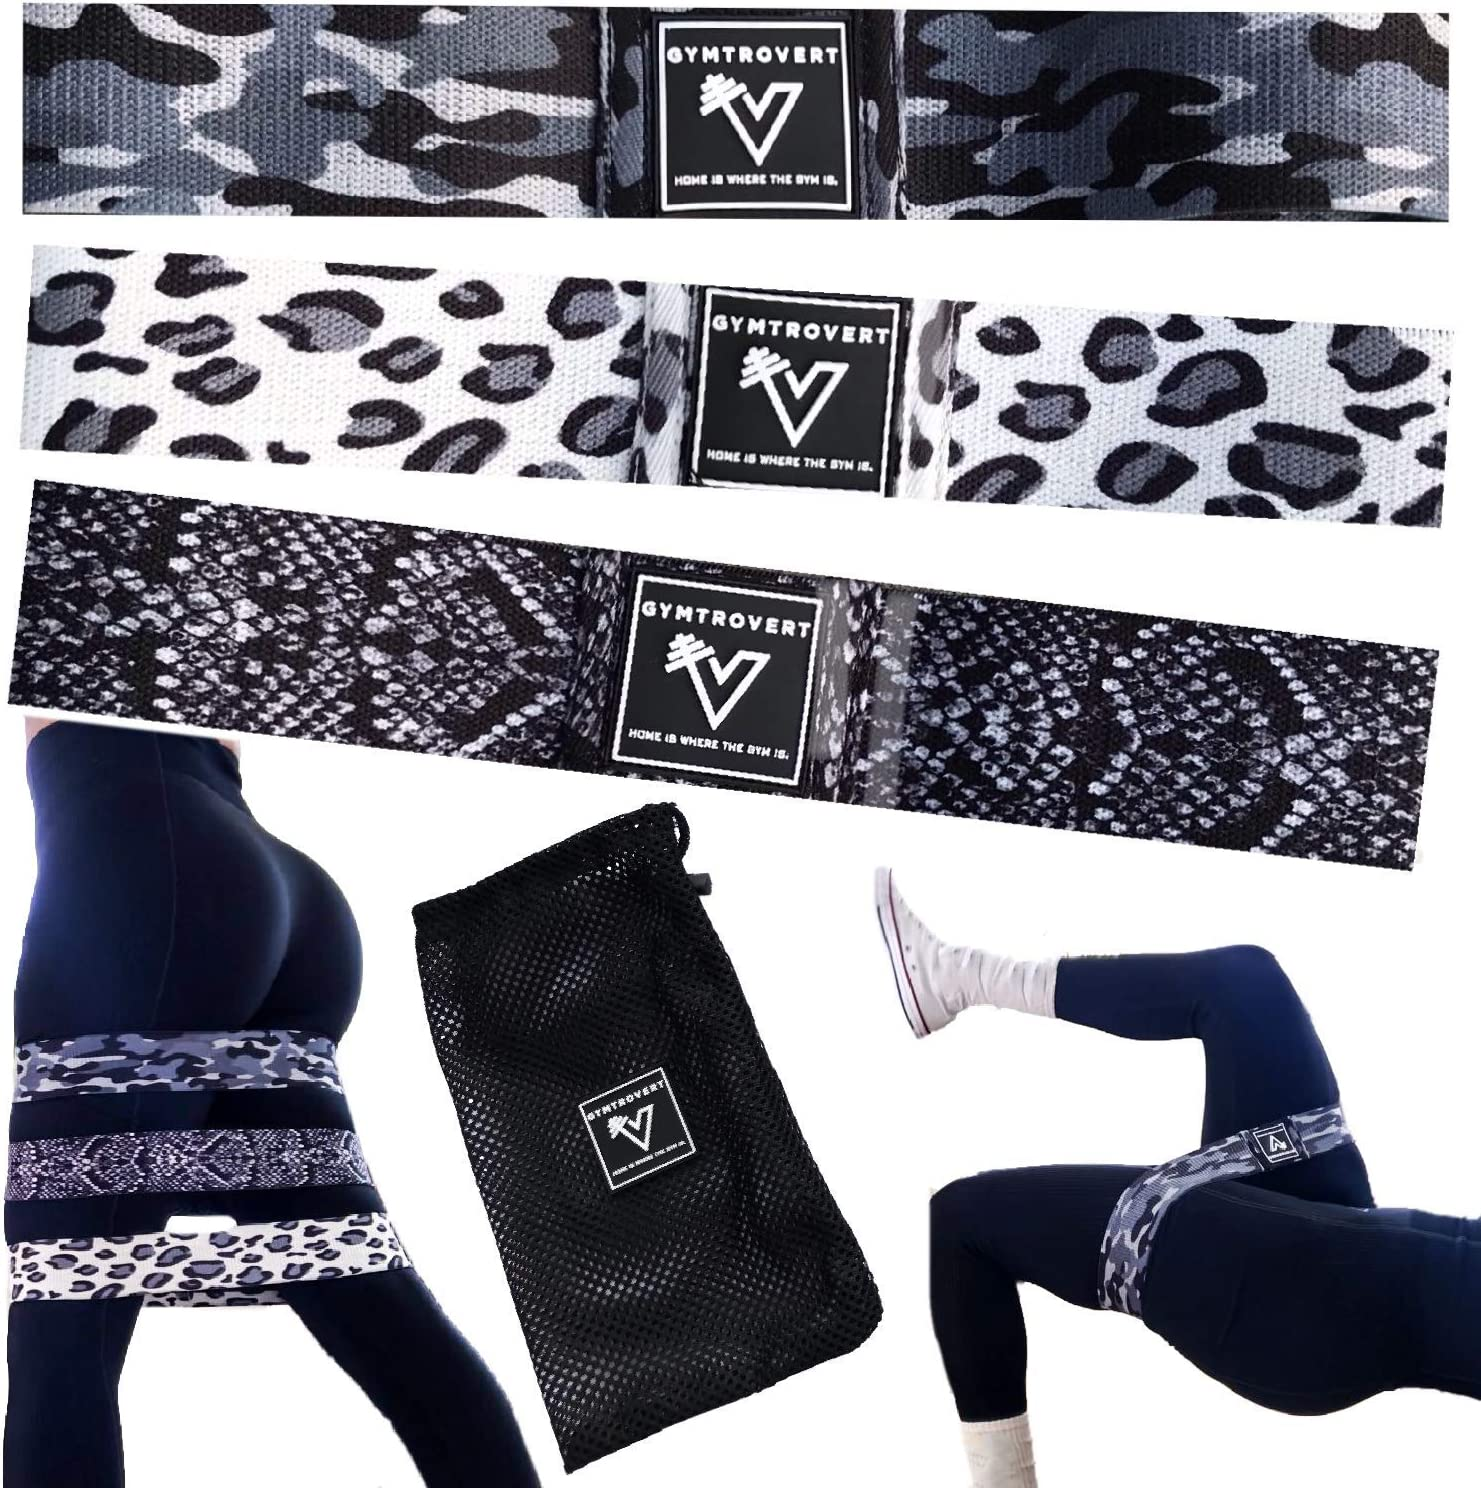 """GYMTROVERT Booty Bands Set of 3 Nonslip Fabric Resistance Exercise Loops to Squat Hip Thrust Glute Leg Workout at Home and Gym Build Muscle 2"""" Camo Leopard Snake Print Fitness Gear with Mesh Carry Bag"""